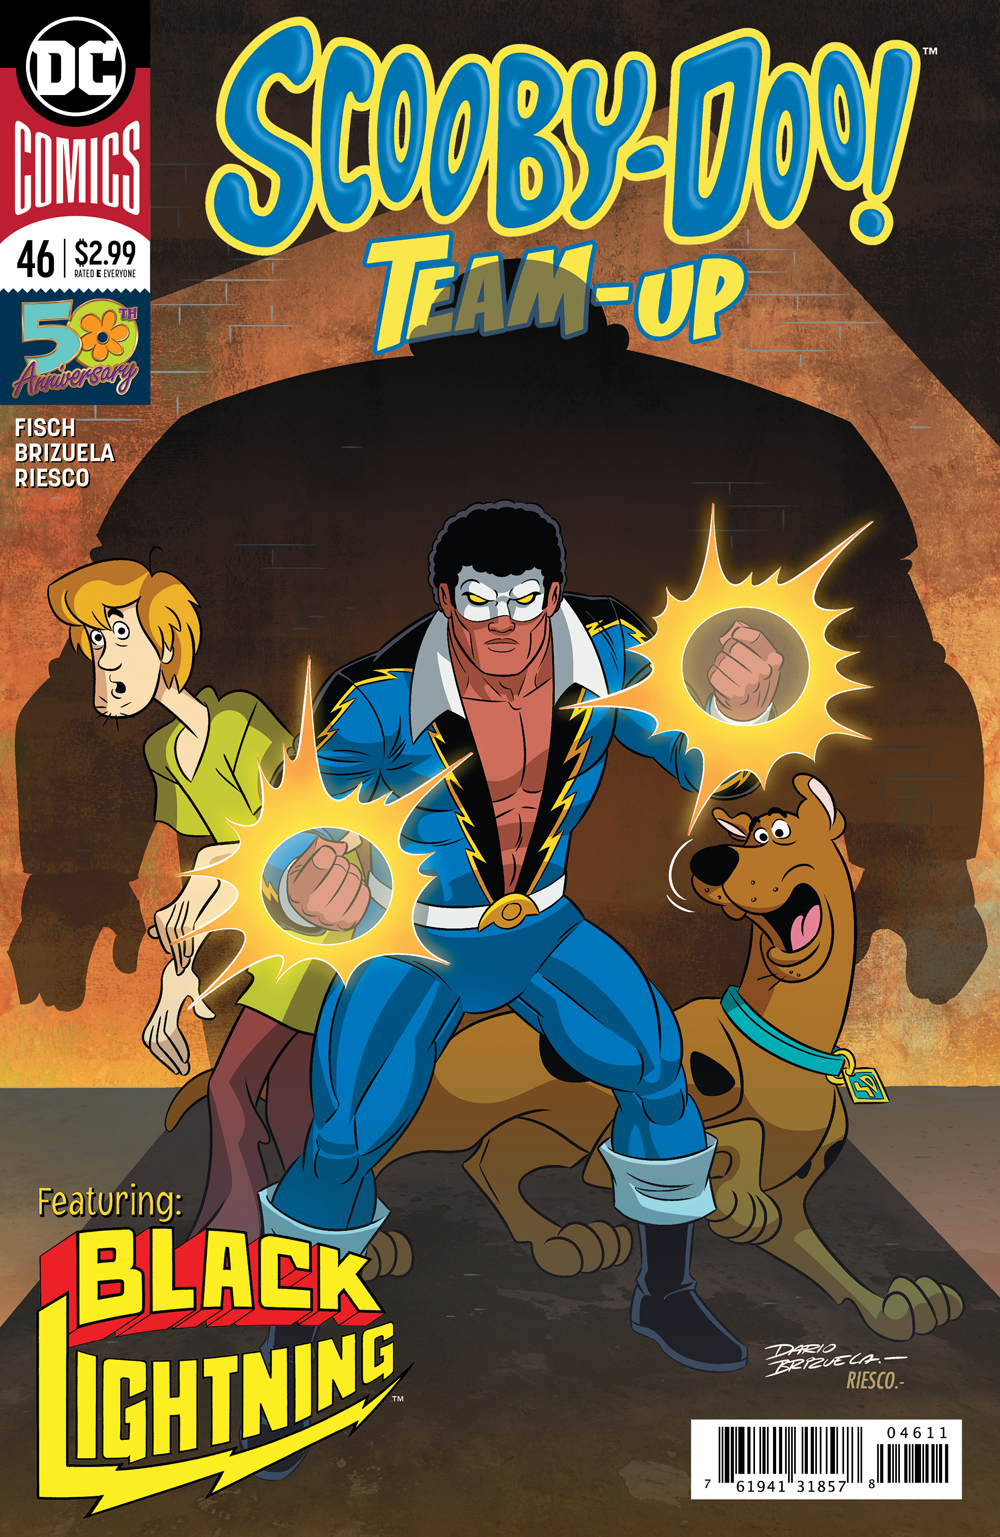 SCOOBY DOO TEAM UP #46